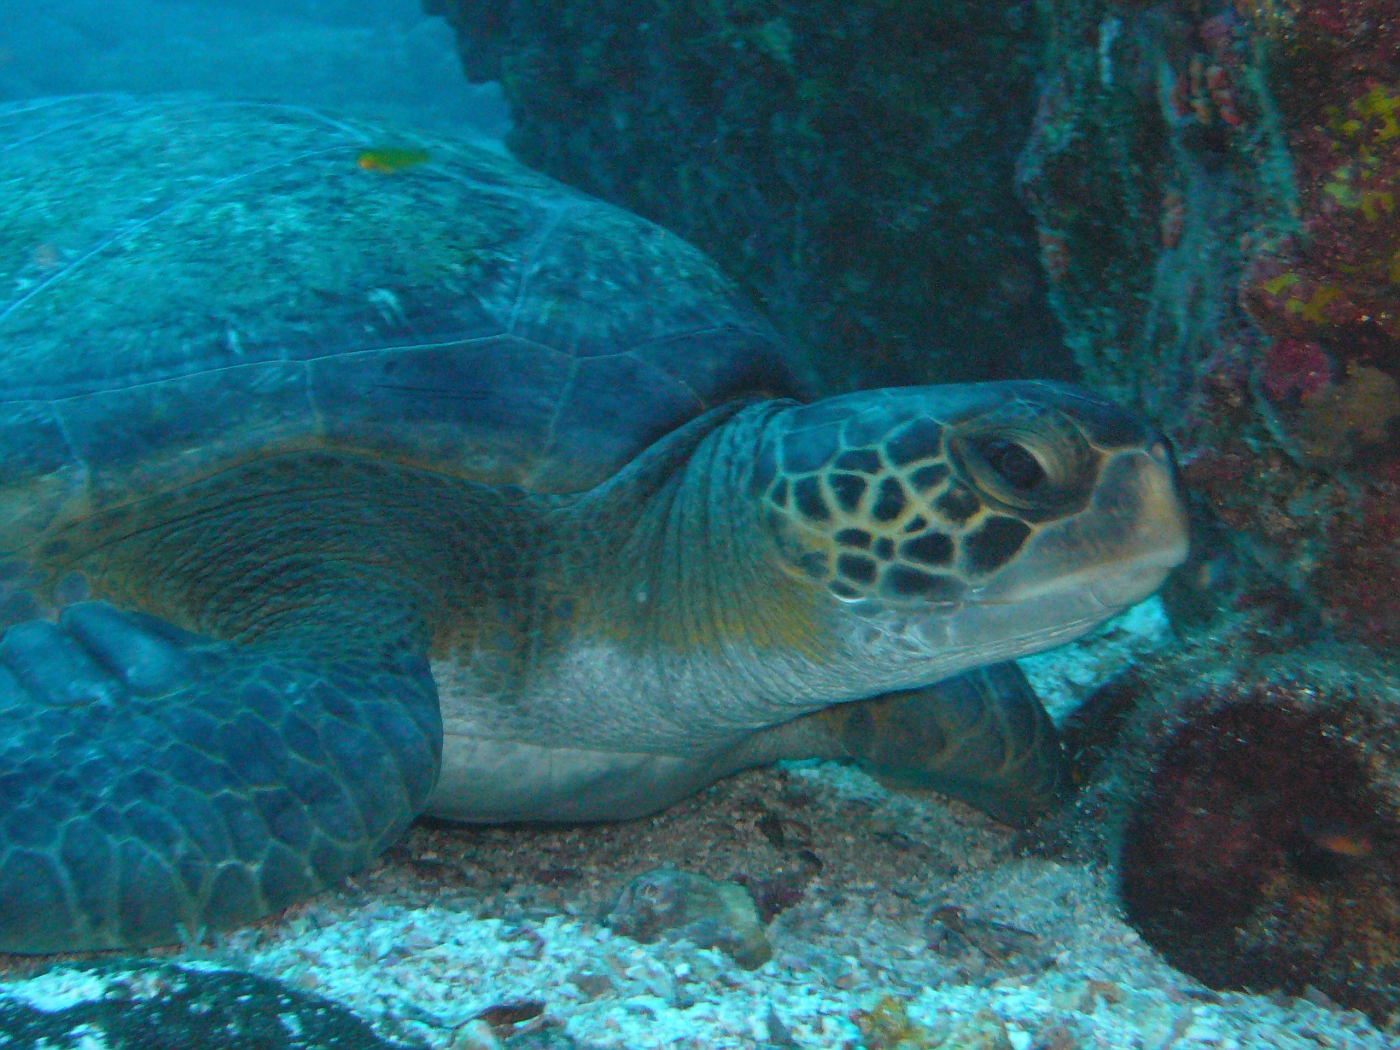 Uh, turtle..okay, Green Turtle about 24 inches around